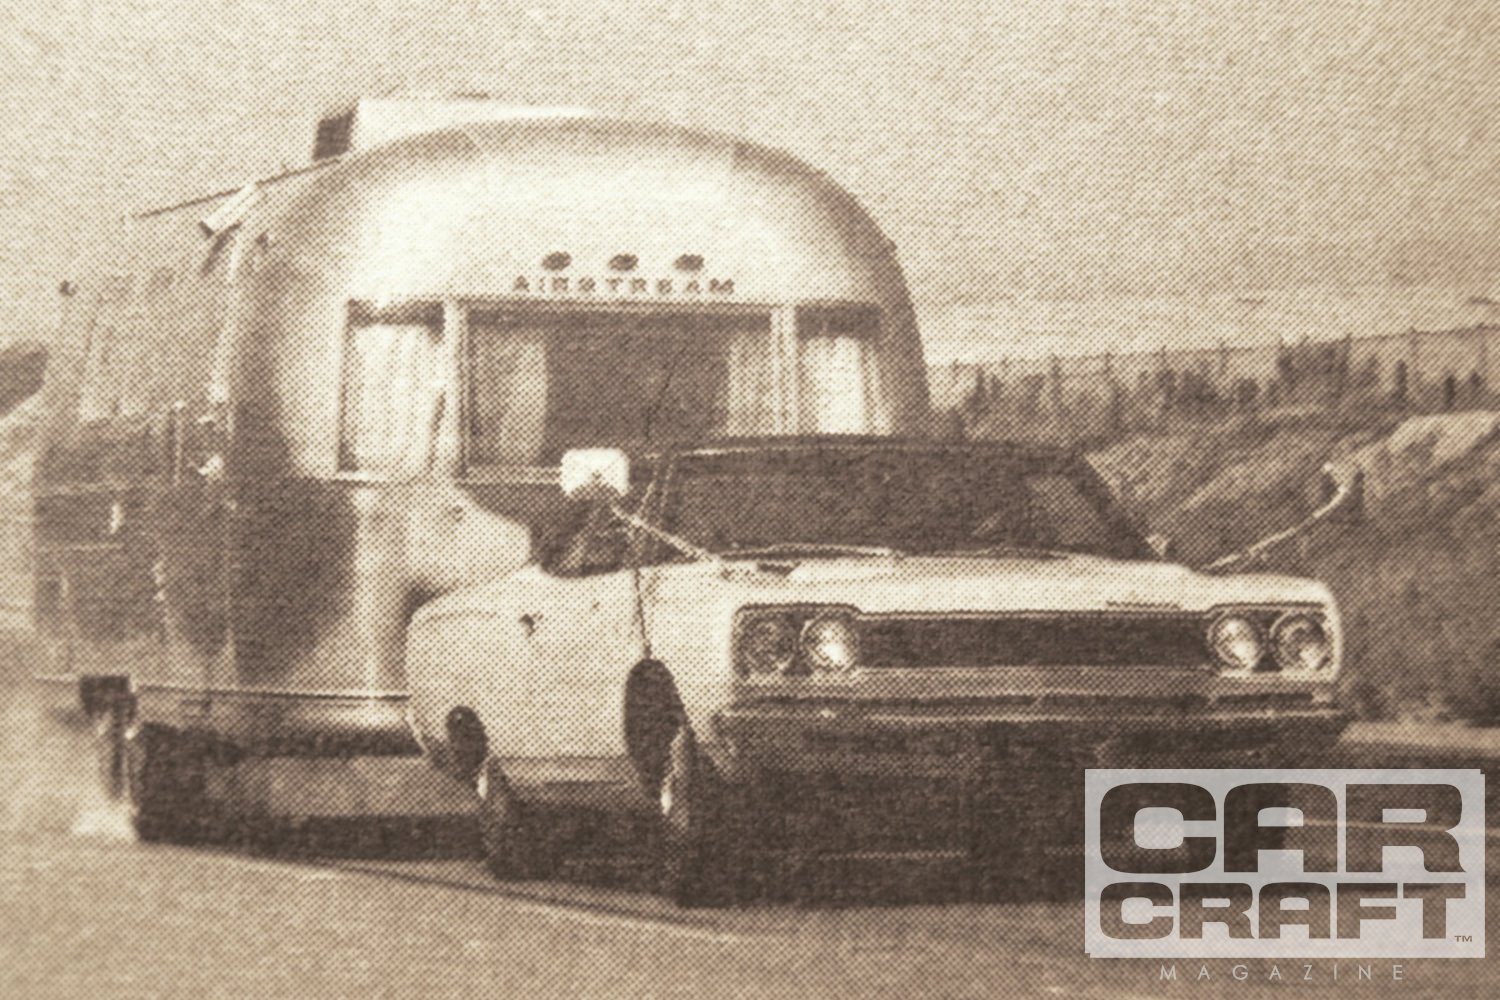 "The strangest Road Runner magazine road test of all appeared in the Nov. '68 edition of the now defunct Motorcade magazine. In a story titled ""The Airstream Grand Prix,"" author Wayne Thoms tested the limits of travel trailer towing by hooking a 31-foot Airstream Sovereign International to this '68 Hemi Road Runner (equipped with 727 Torqueflite and optional power front disc brakes). Similar trailers were coupled to a Pontiac Ventura (powered by a 340hp 400 4-bbl), Chevy Caprice (with the 385hp 427 4-bbl), and Buick LeSabre (with 280hp 350 4-bbl), then a series of tests were conducted at Riverside Raceway. The Hemi won the 0–60 acceleration test in 14.9 seconds but lagged in the 65–0 panic stop at 193 feet (shown here, note the locked trailer tires). Oddly, the Buick and Pontiac stopped in 160 feet, sharing the win. With its 4,650-pound load, testers noted the Road Runner was prone to pre-ignition under full throttle. Where is this car today?"